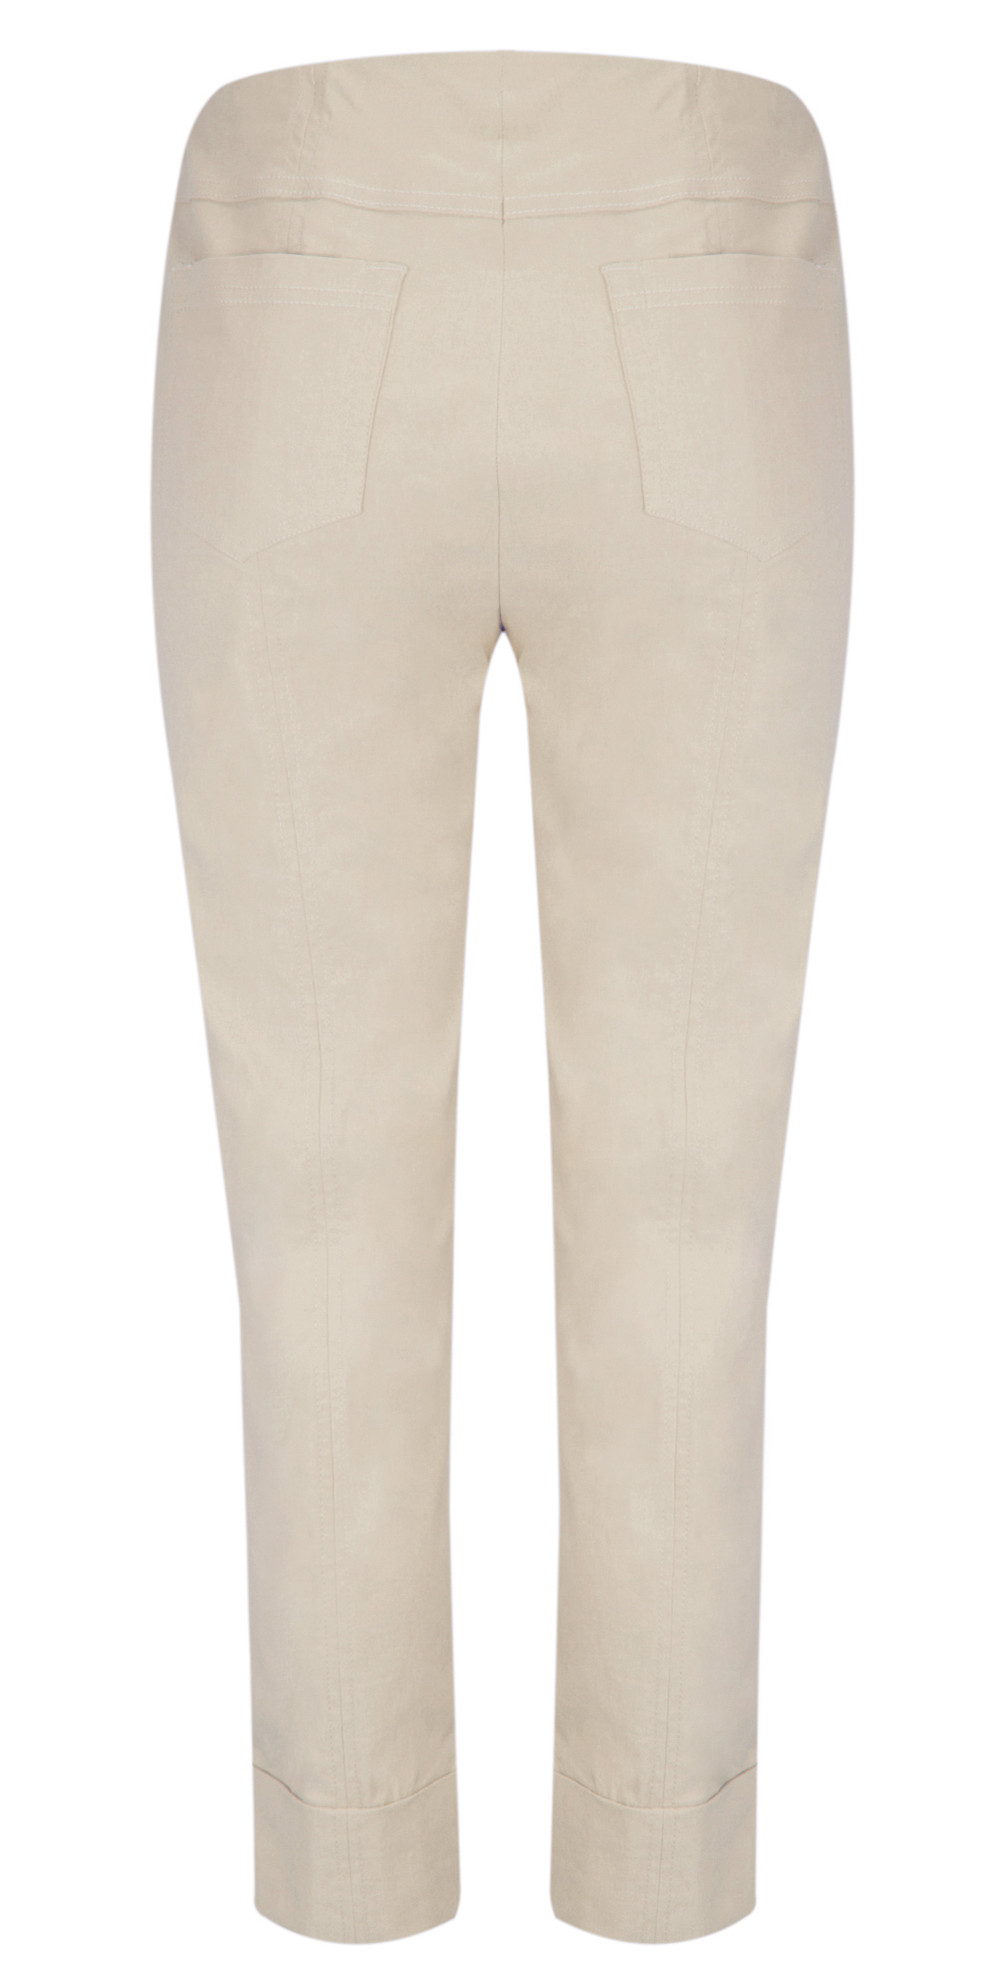 Bella 09 Light Taupe Ankle Length 7/8 Cuff Trouser main image